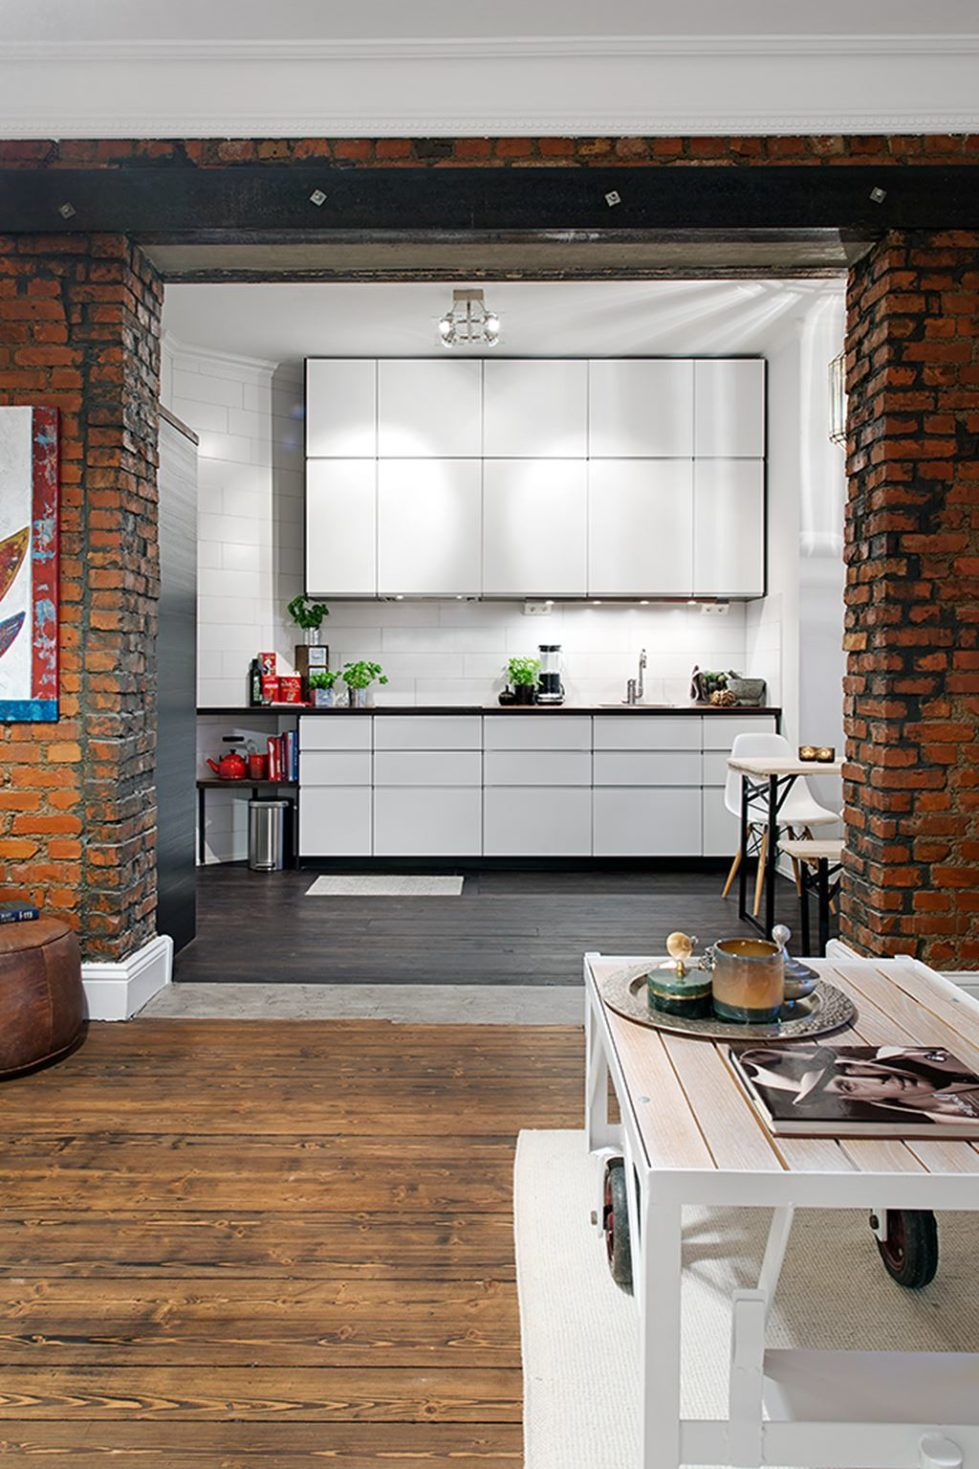 The Delightful Design of the Studio Flat Scandinavian Style - Kitchen 4